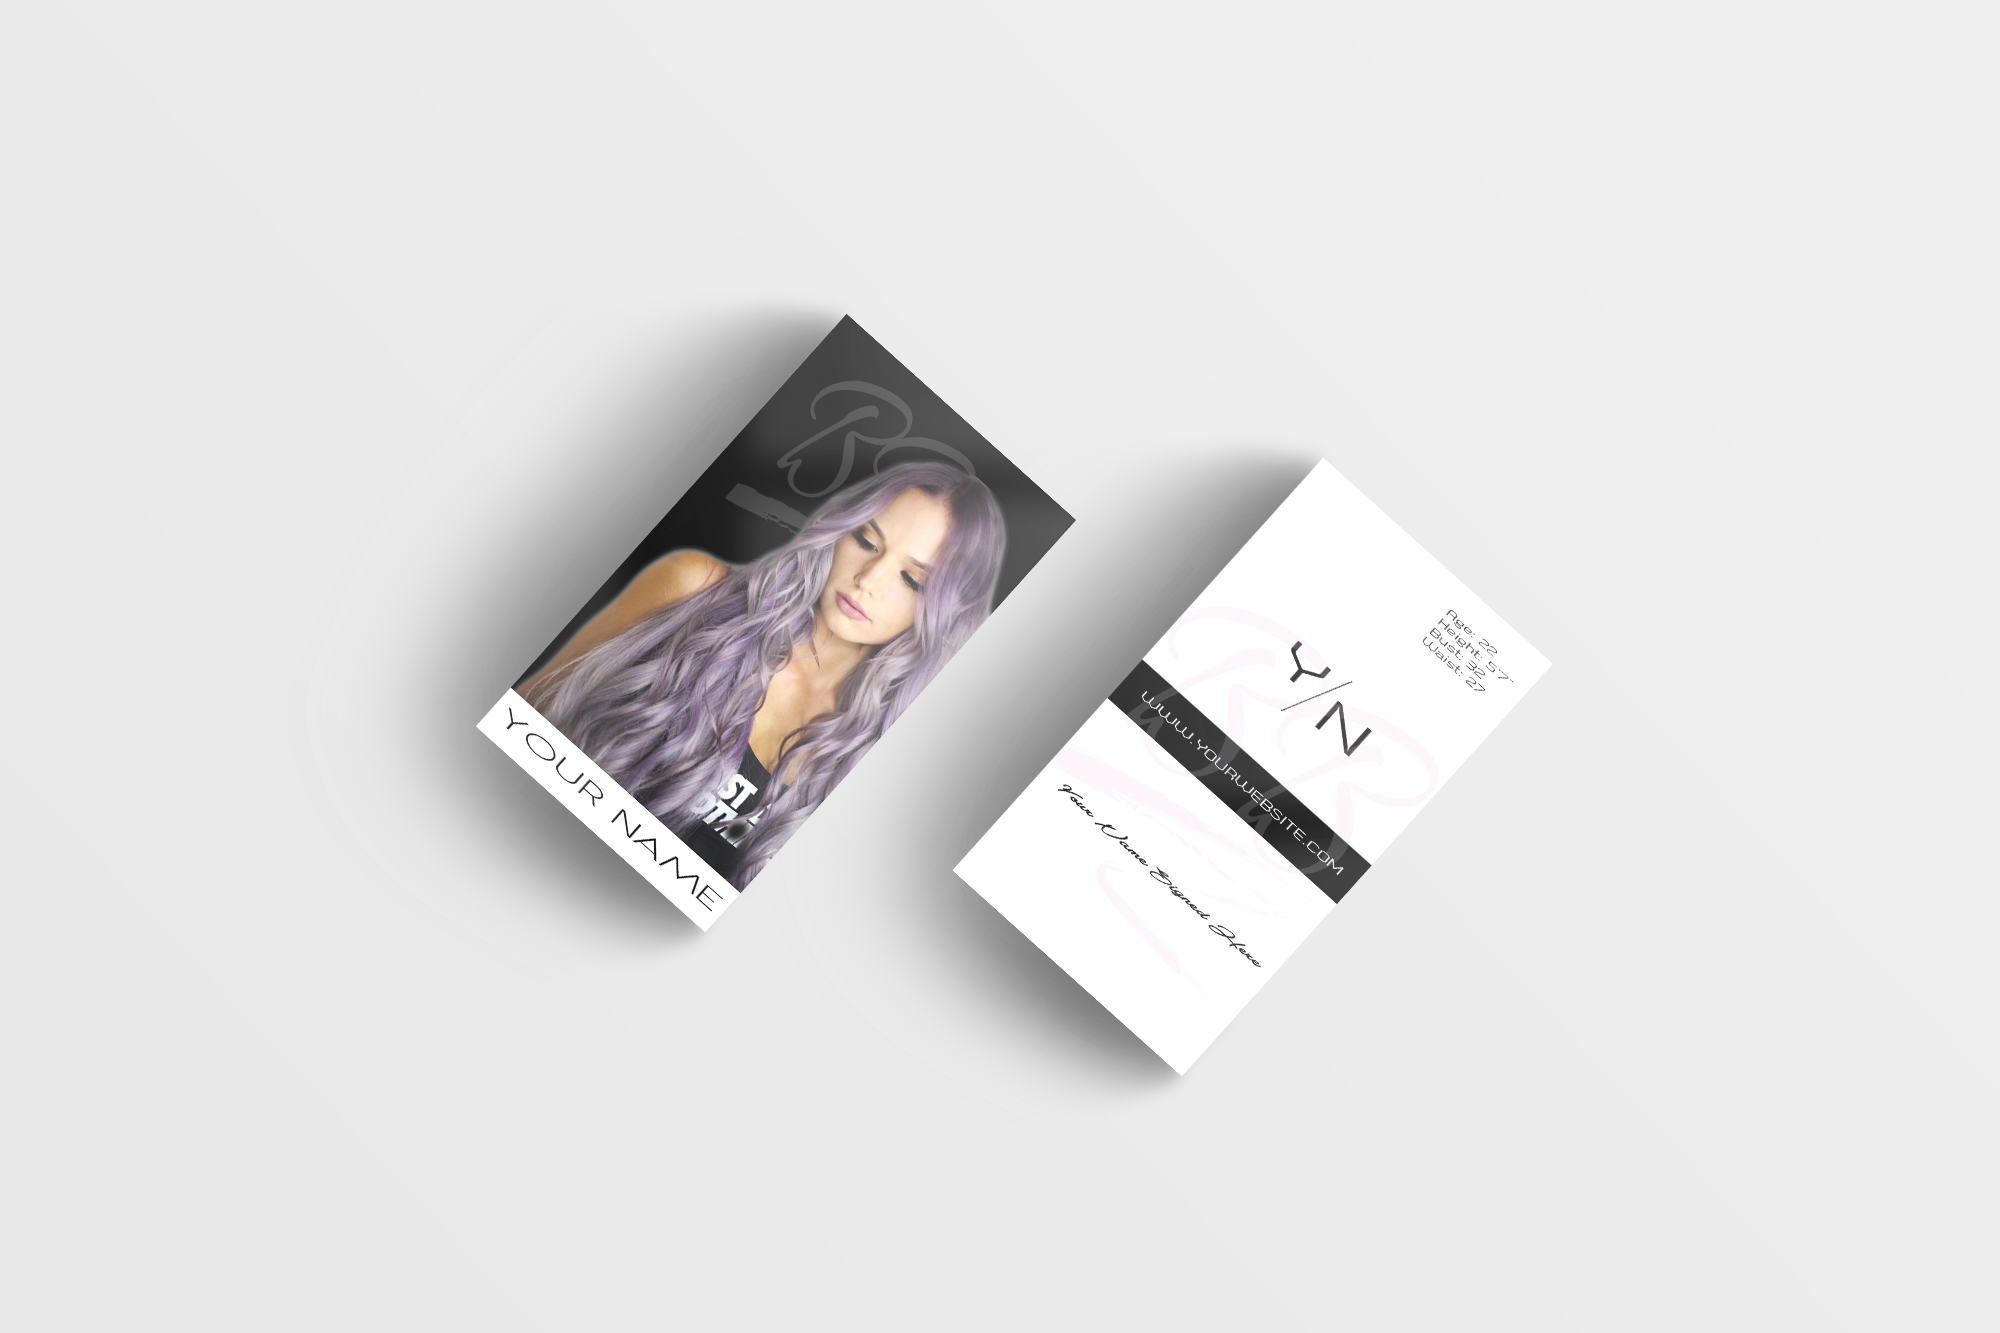 Perfect business card design for models or inspiring models shop today! -